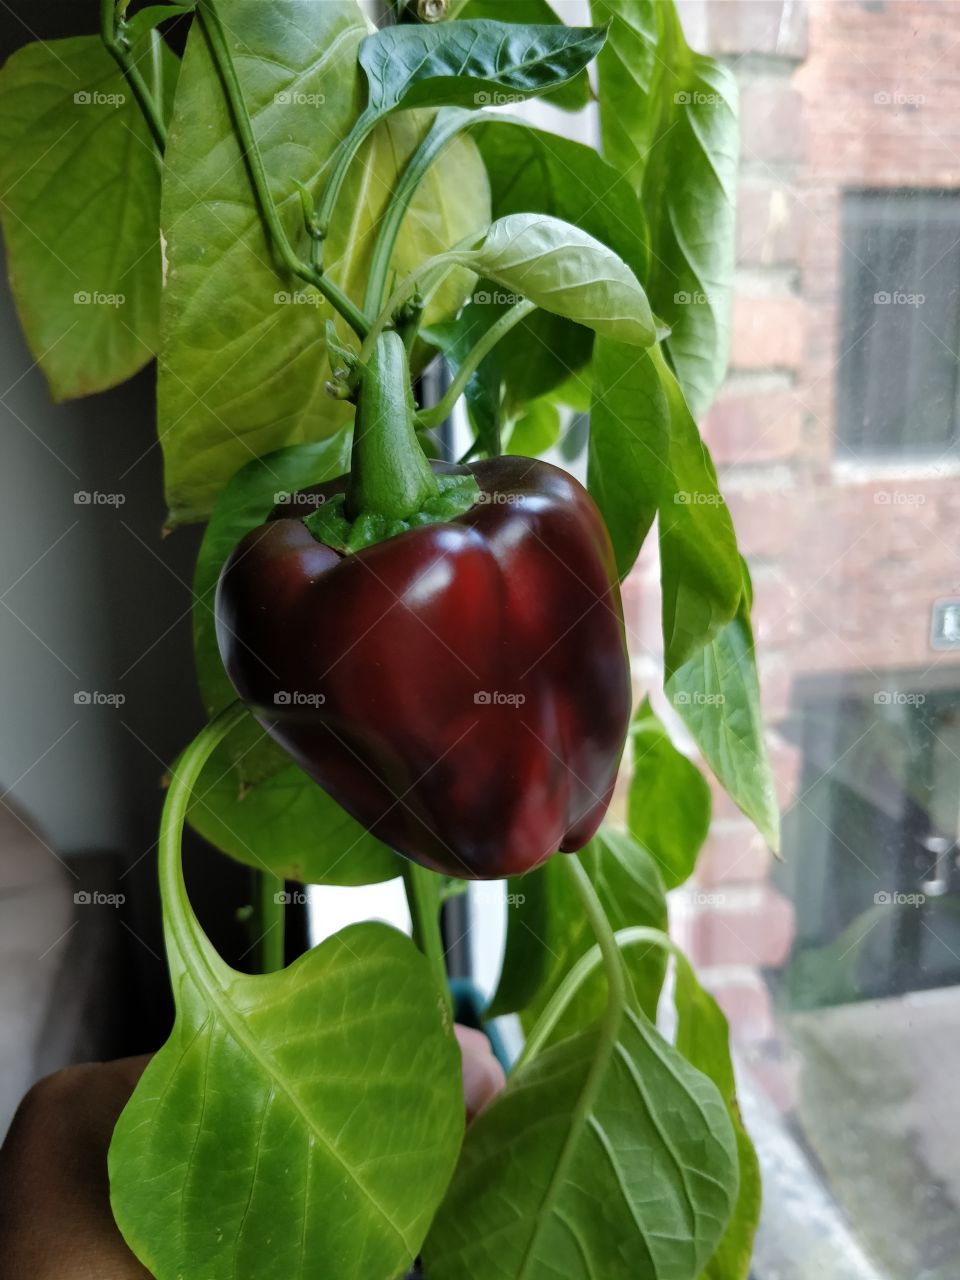 Everything grows with love. Bell pepper is the answer...